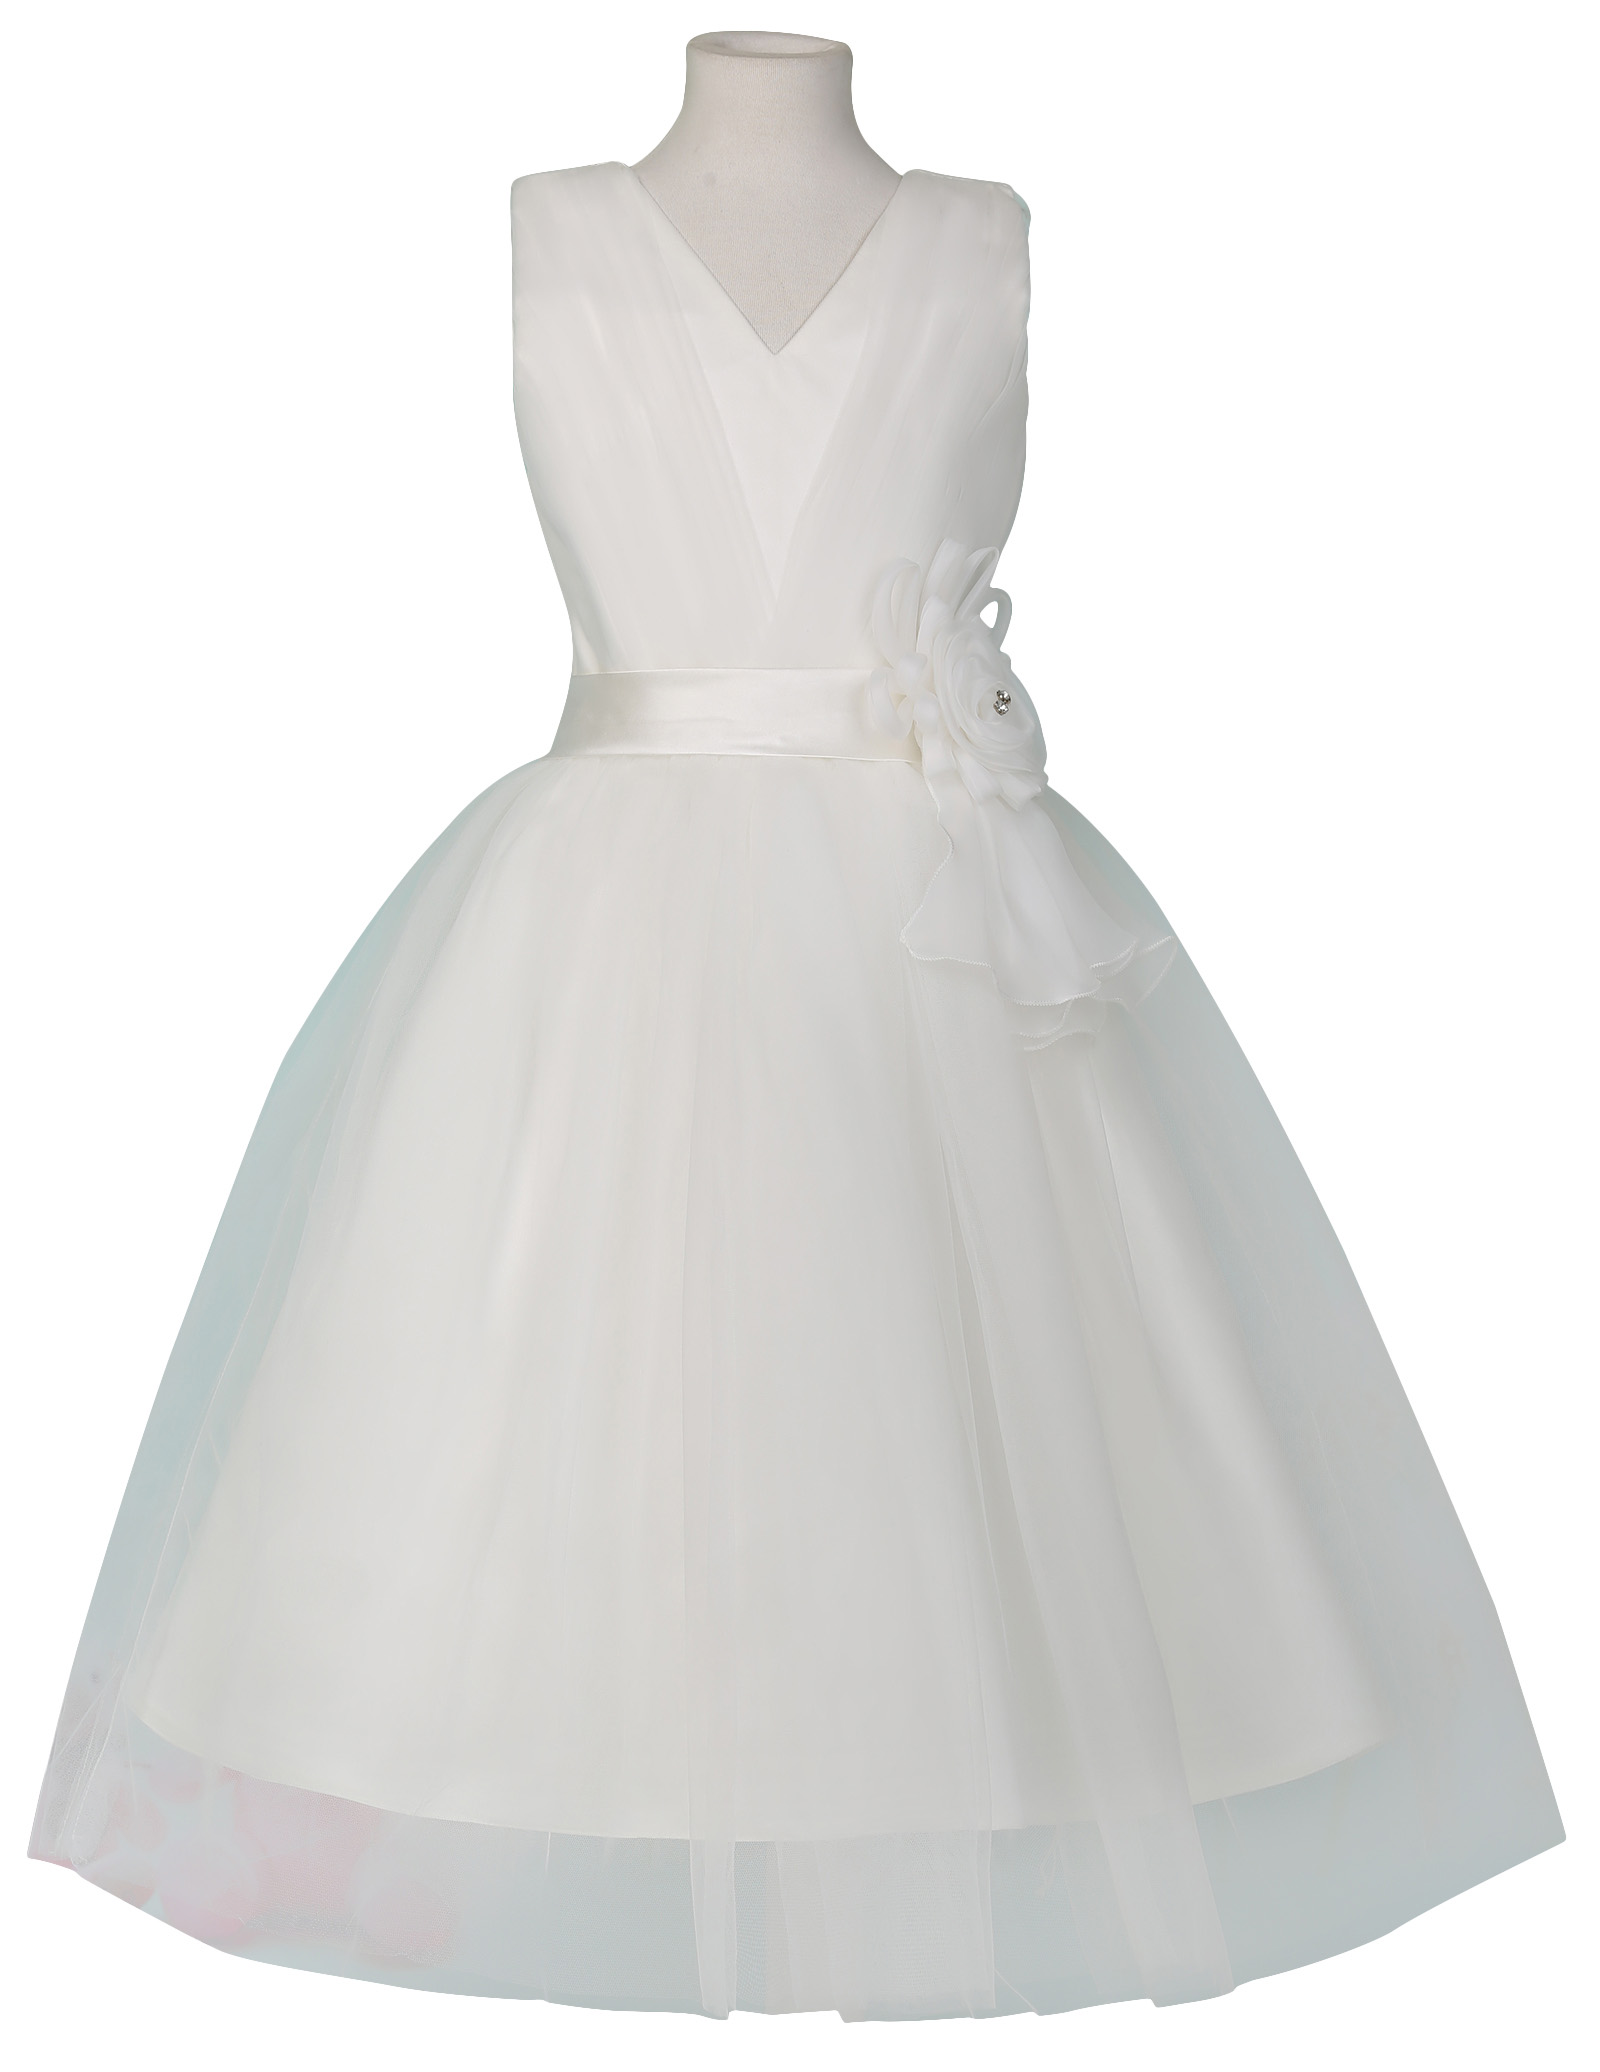 2016 New Cheap Flower Girl Dresses With Tulle For Weddings White First mun